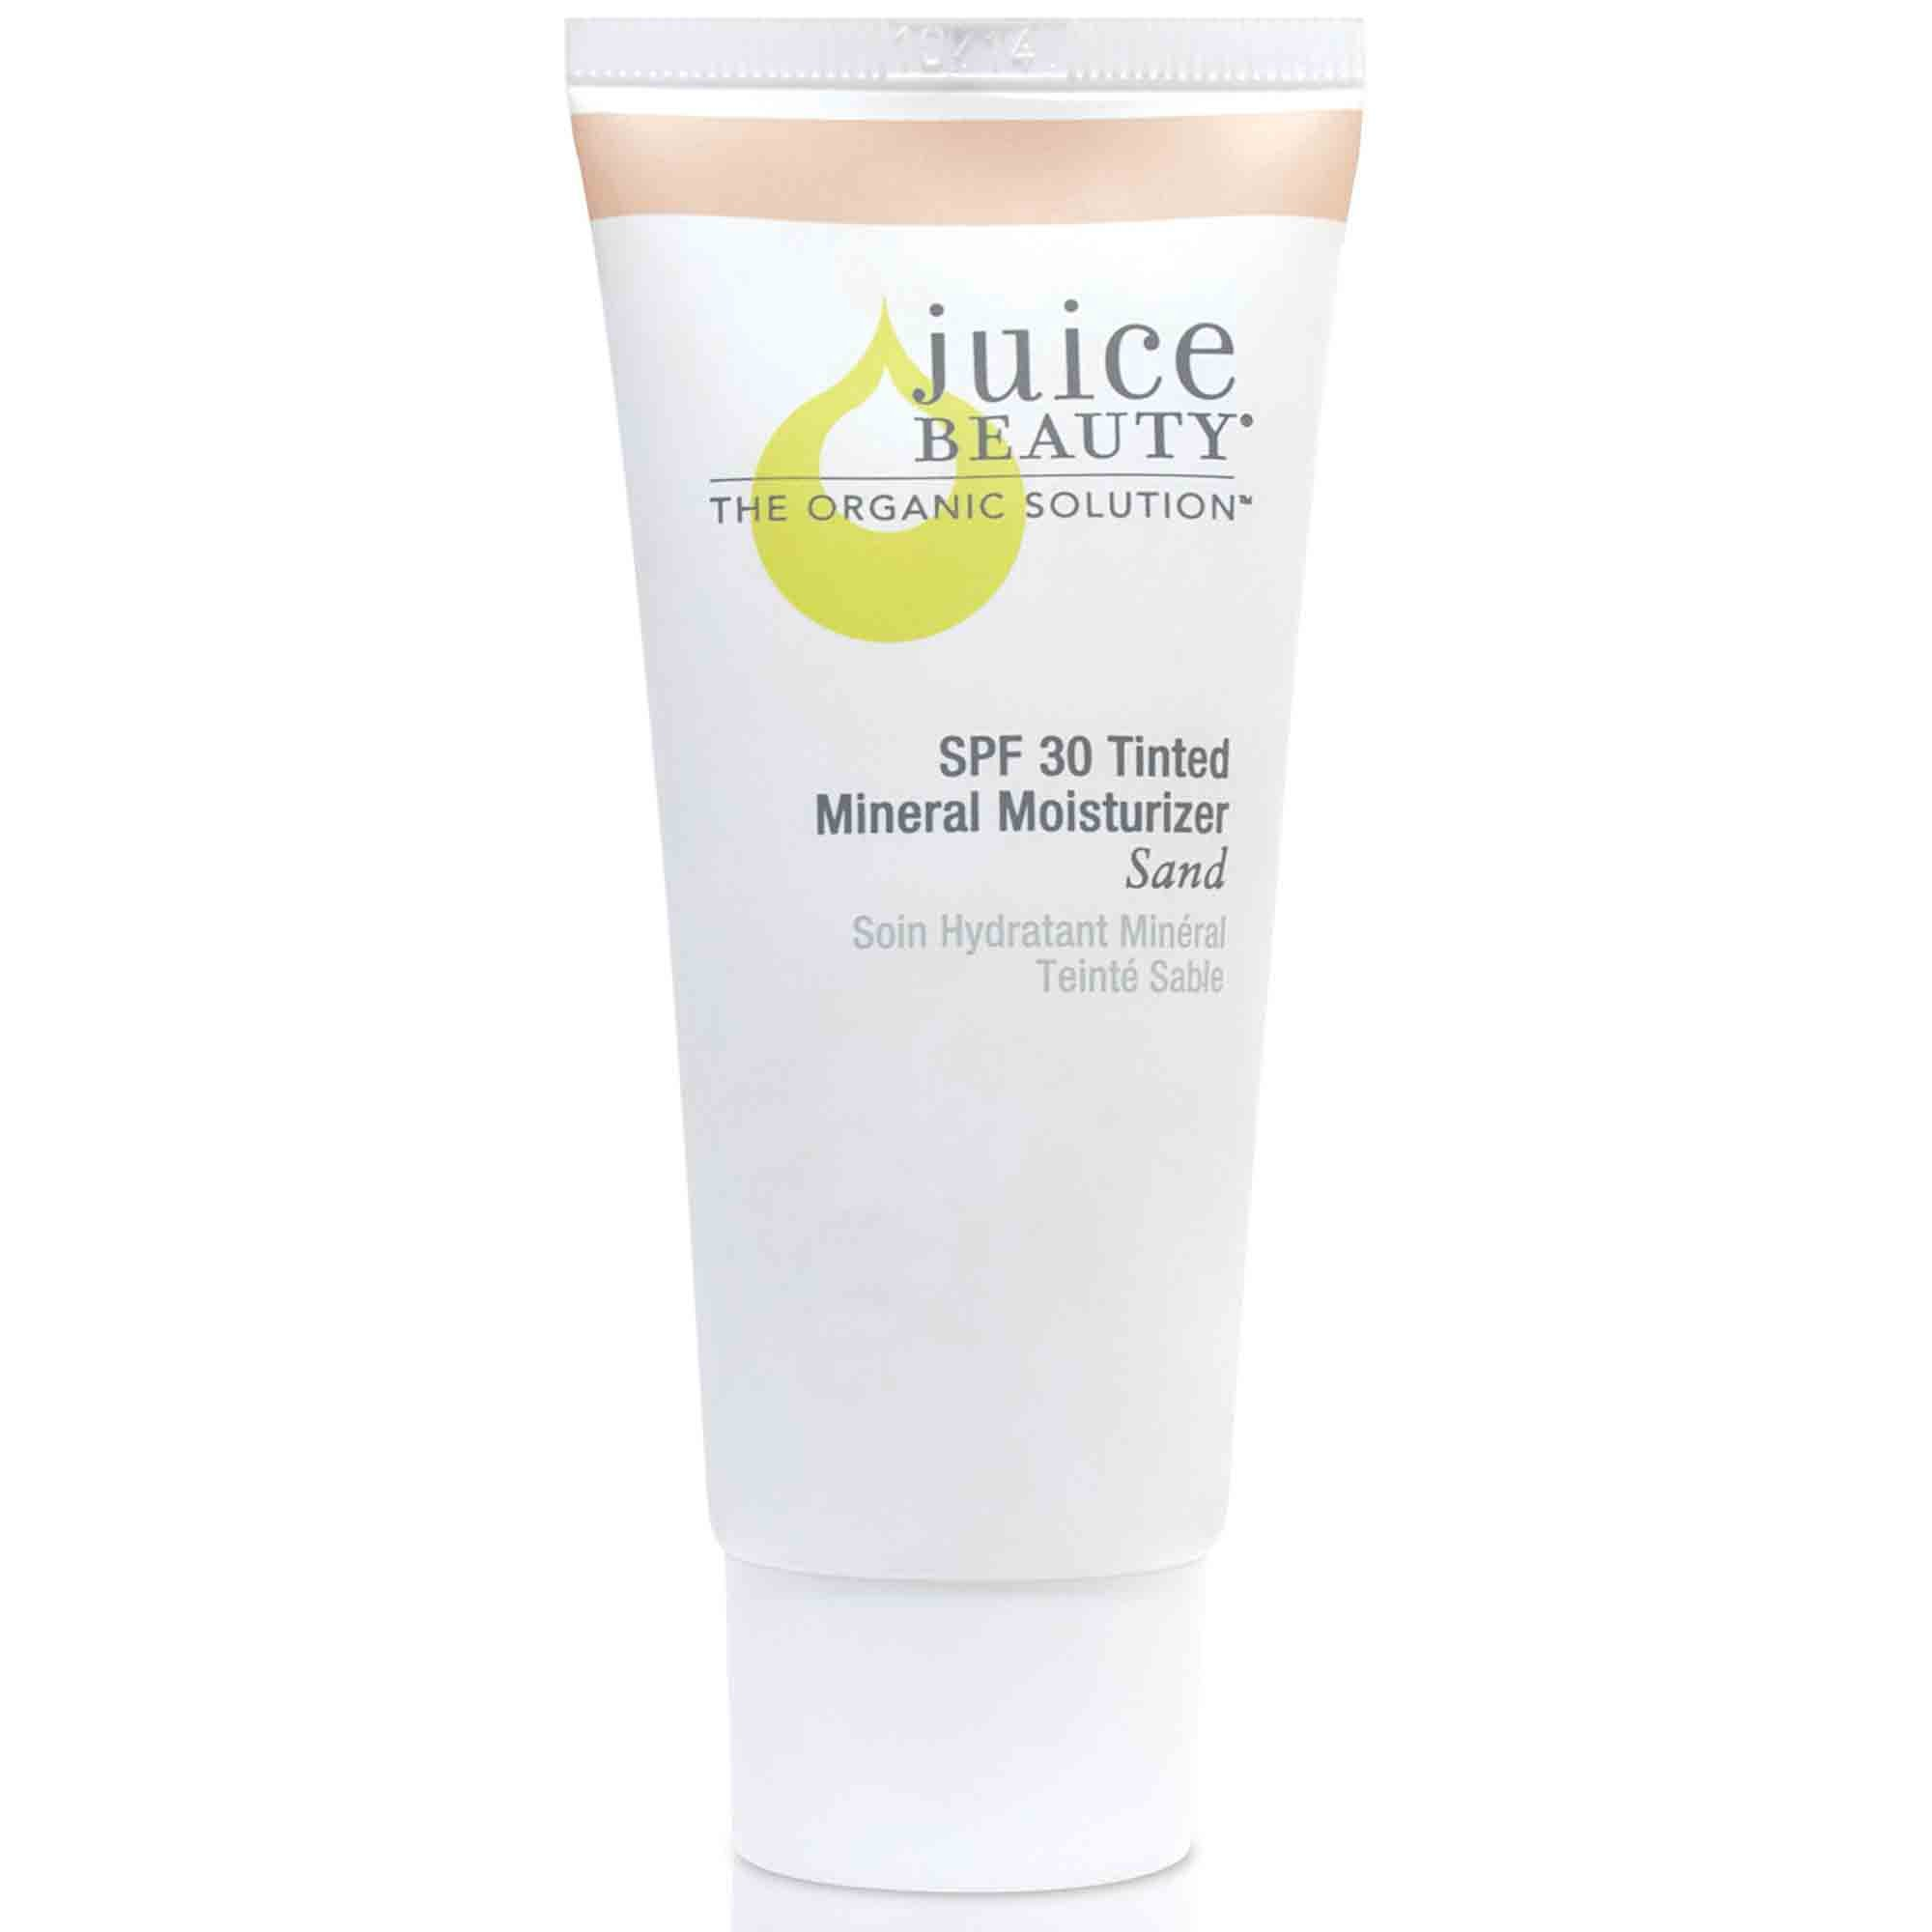 Juice Beauty SPF 30 Tinted Mineral Moisturizer 2 Fl Oz by Juice Beauty